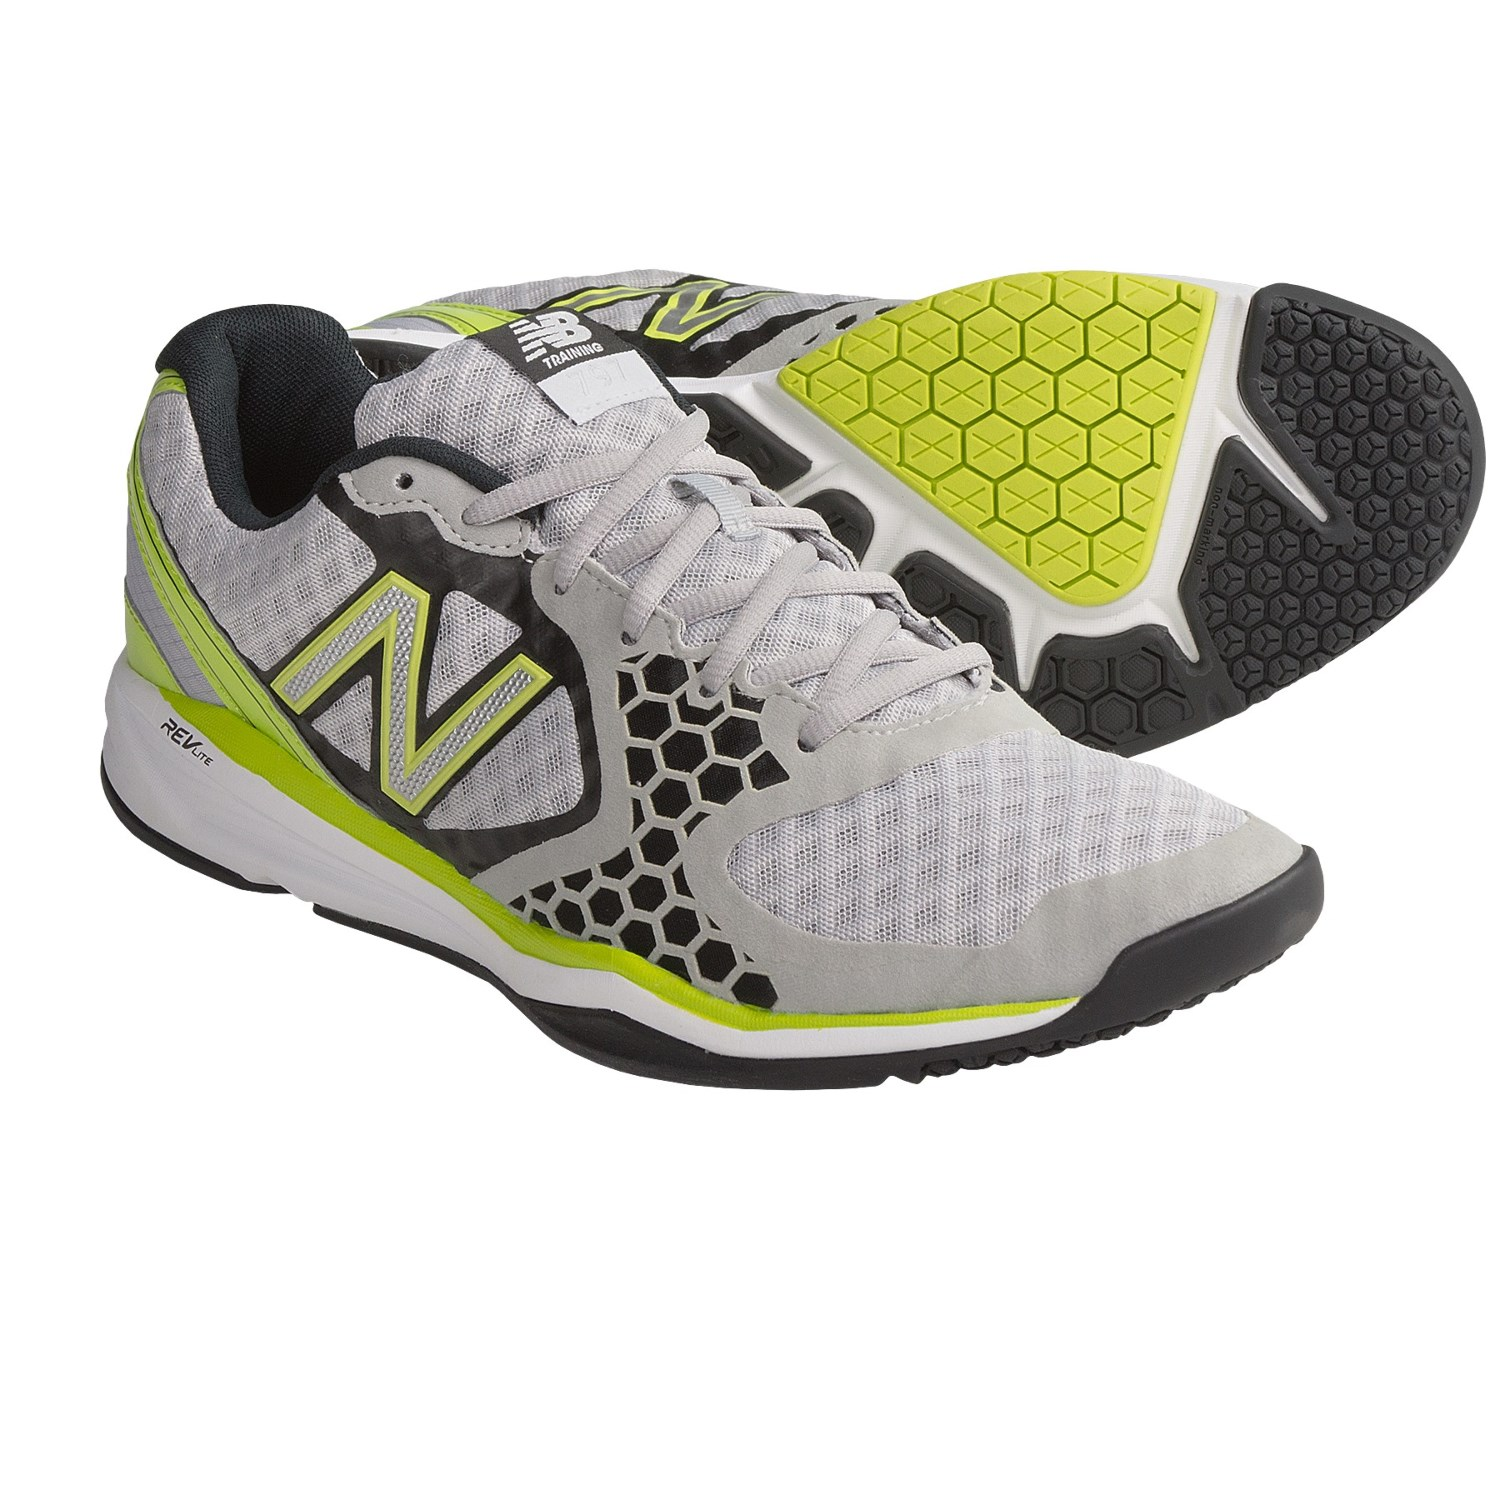 New Balance 797 Cross Training Shoes (For Men) in Grey/Lime Green